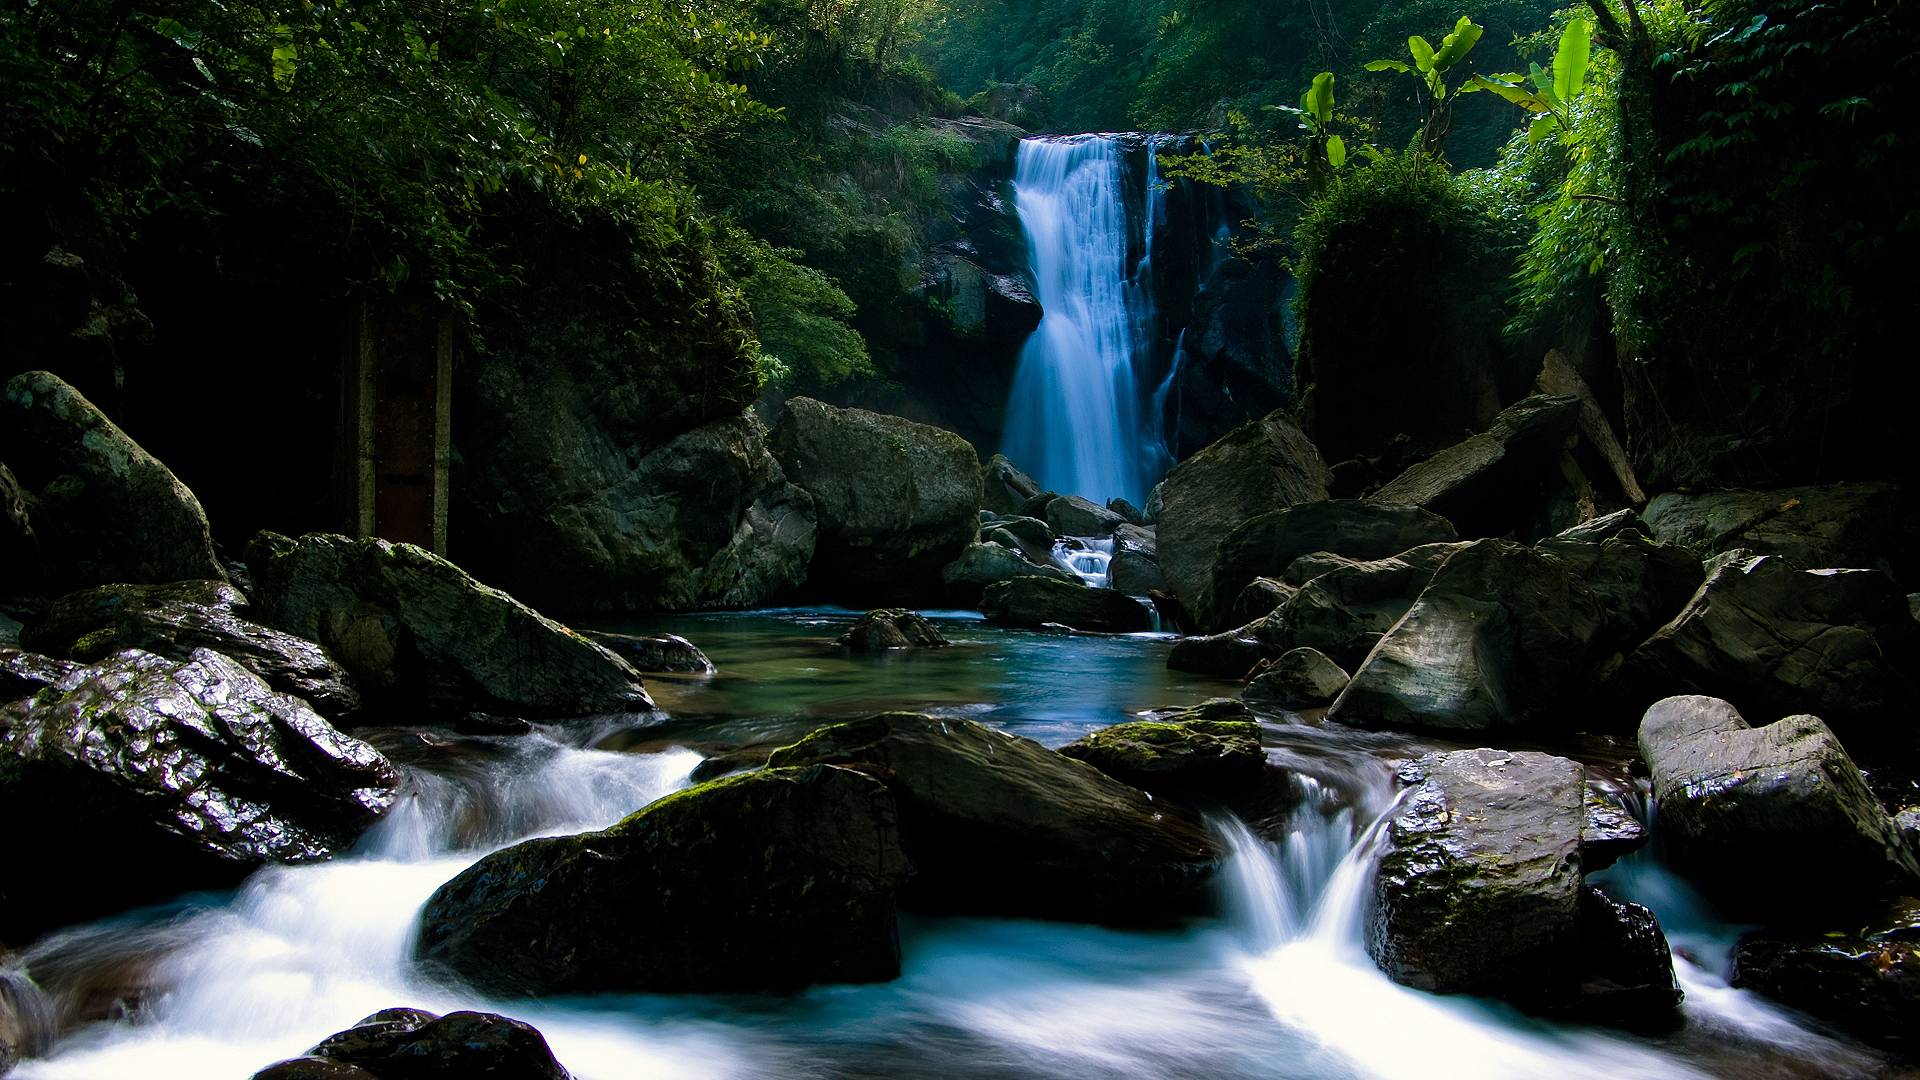 National Geographic Wallpaper Download: Download National Geographic Wallpapers Full HD Gallery